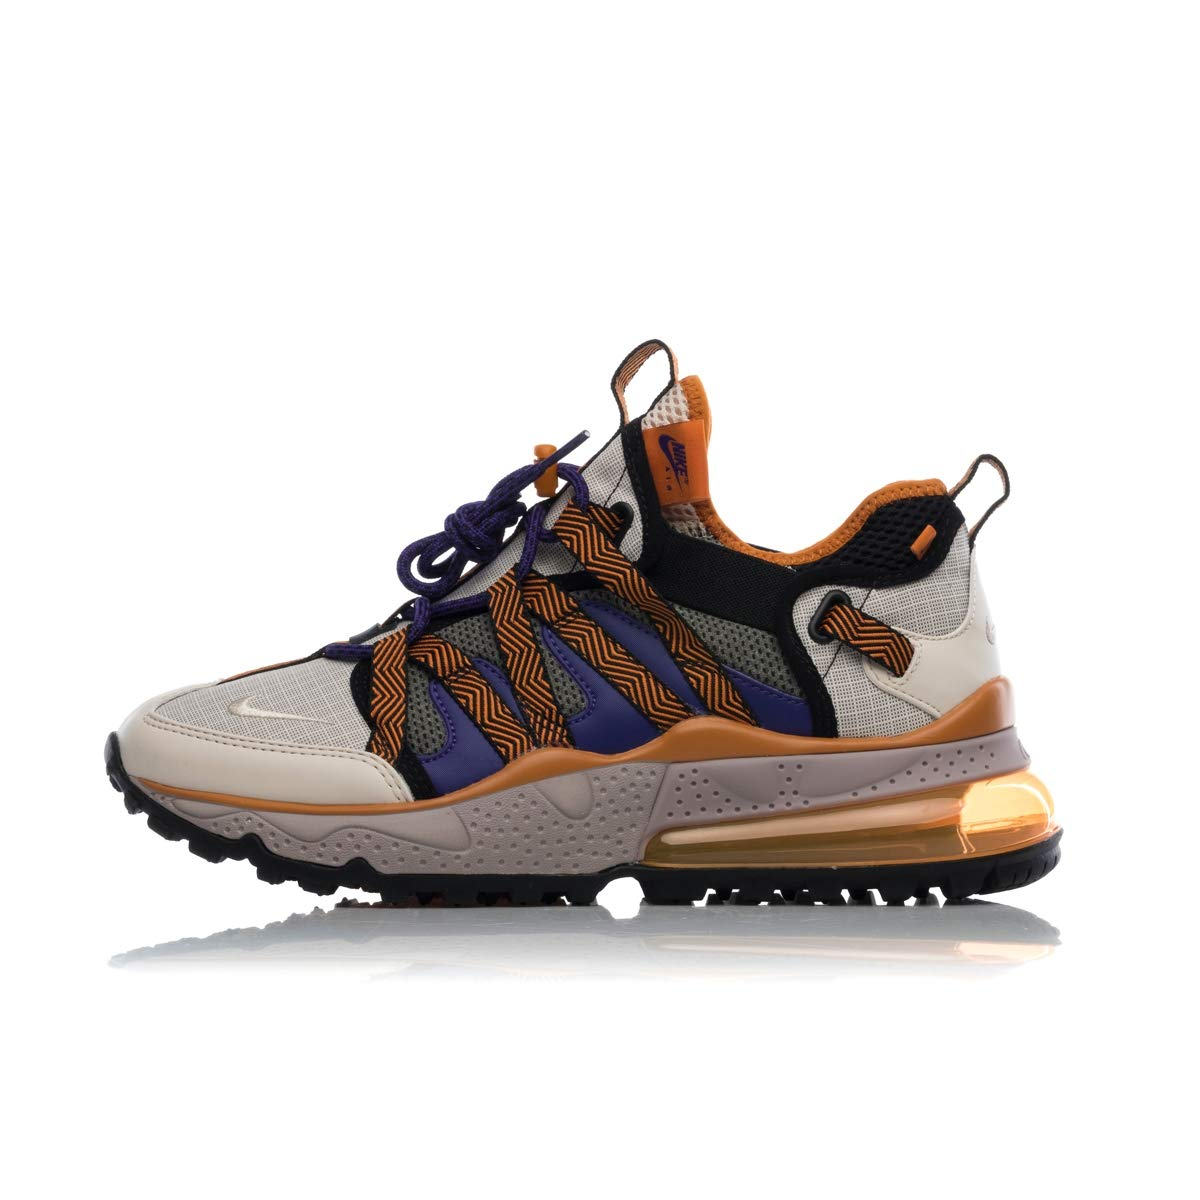 lowest price e378f 3ad72 Nike Mens Air Max 270 Bowfin Running Shoe